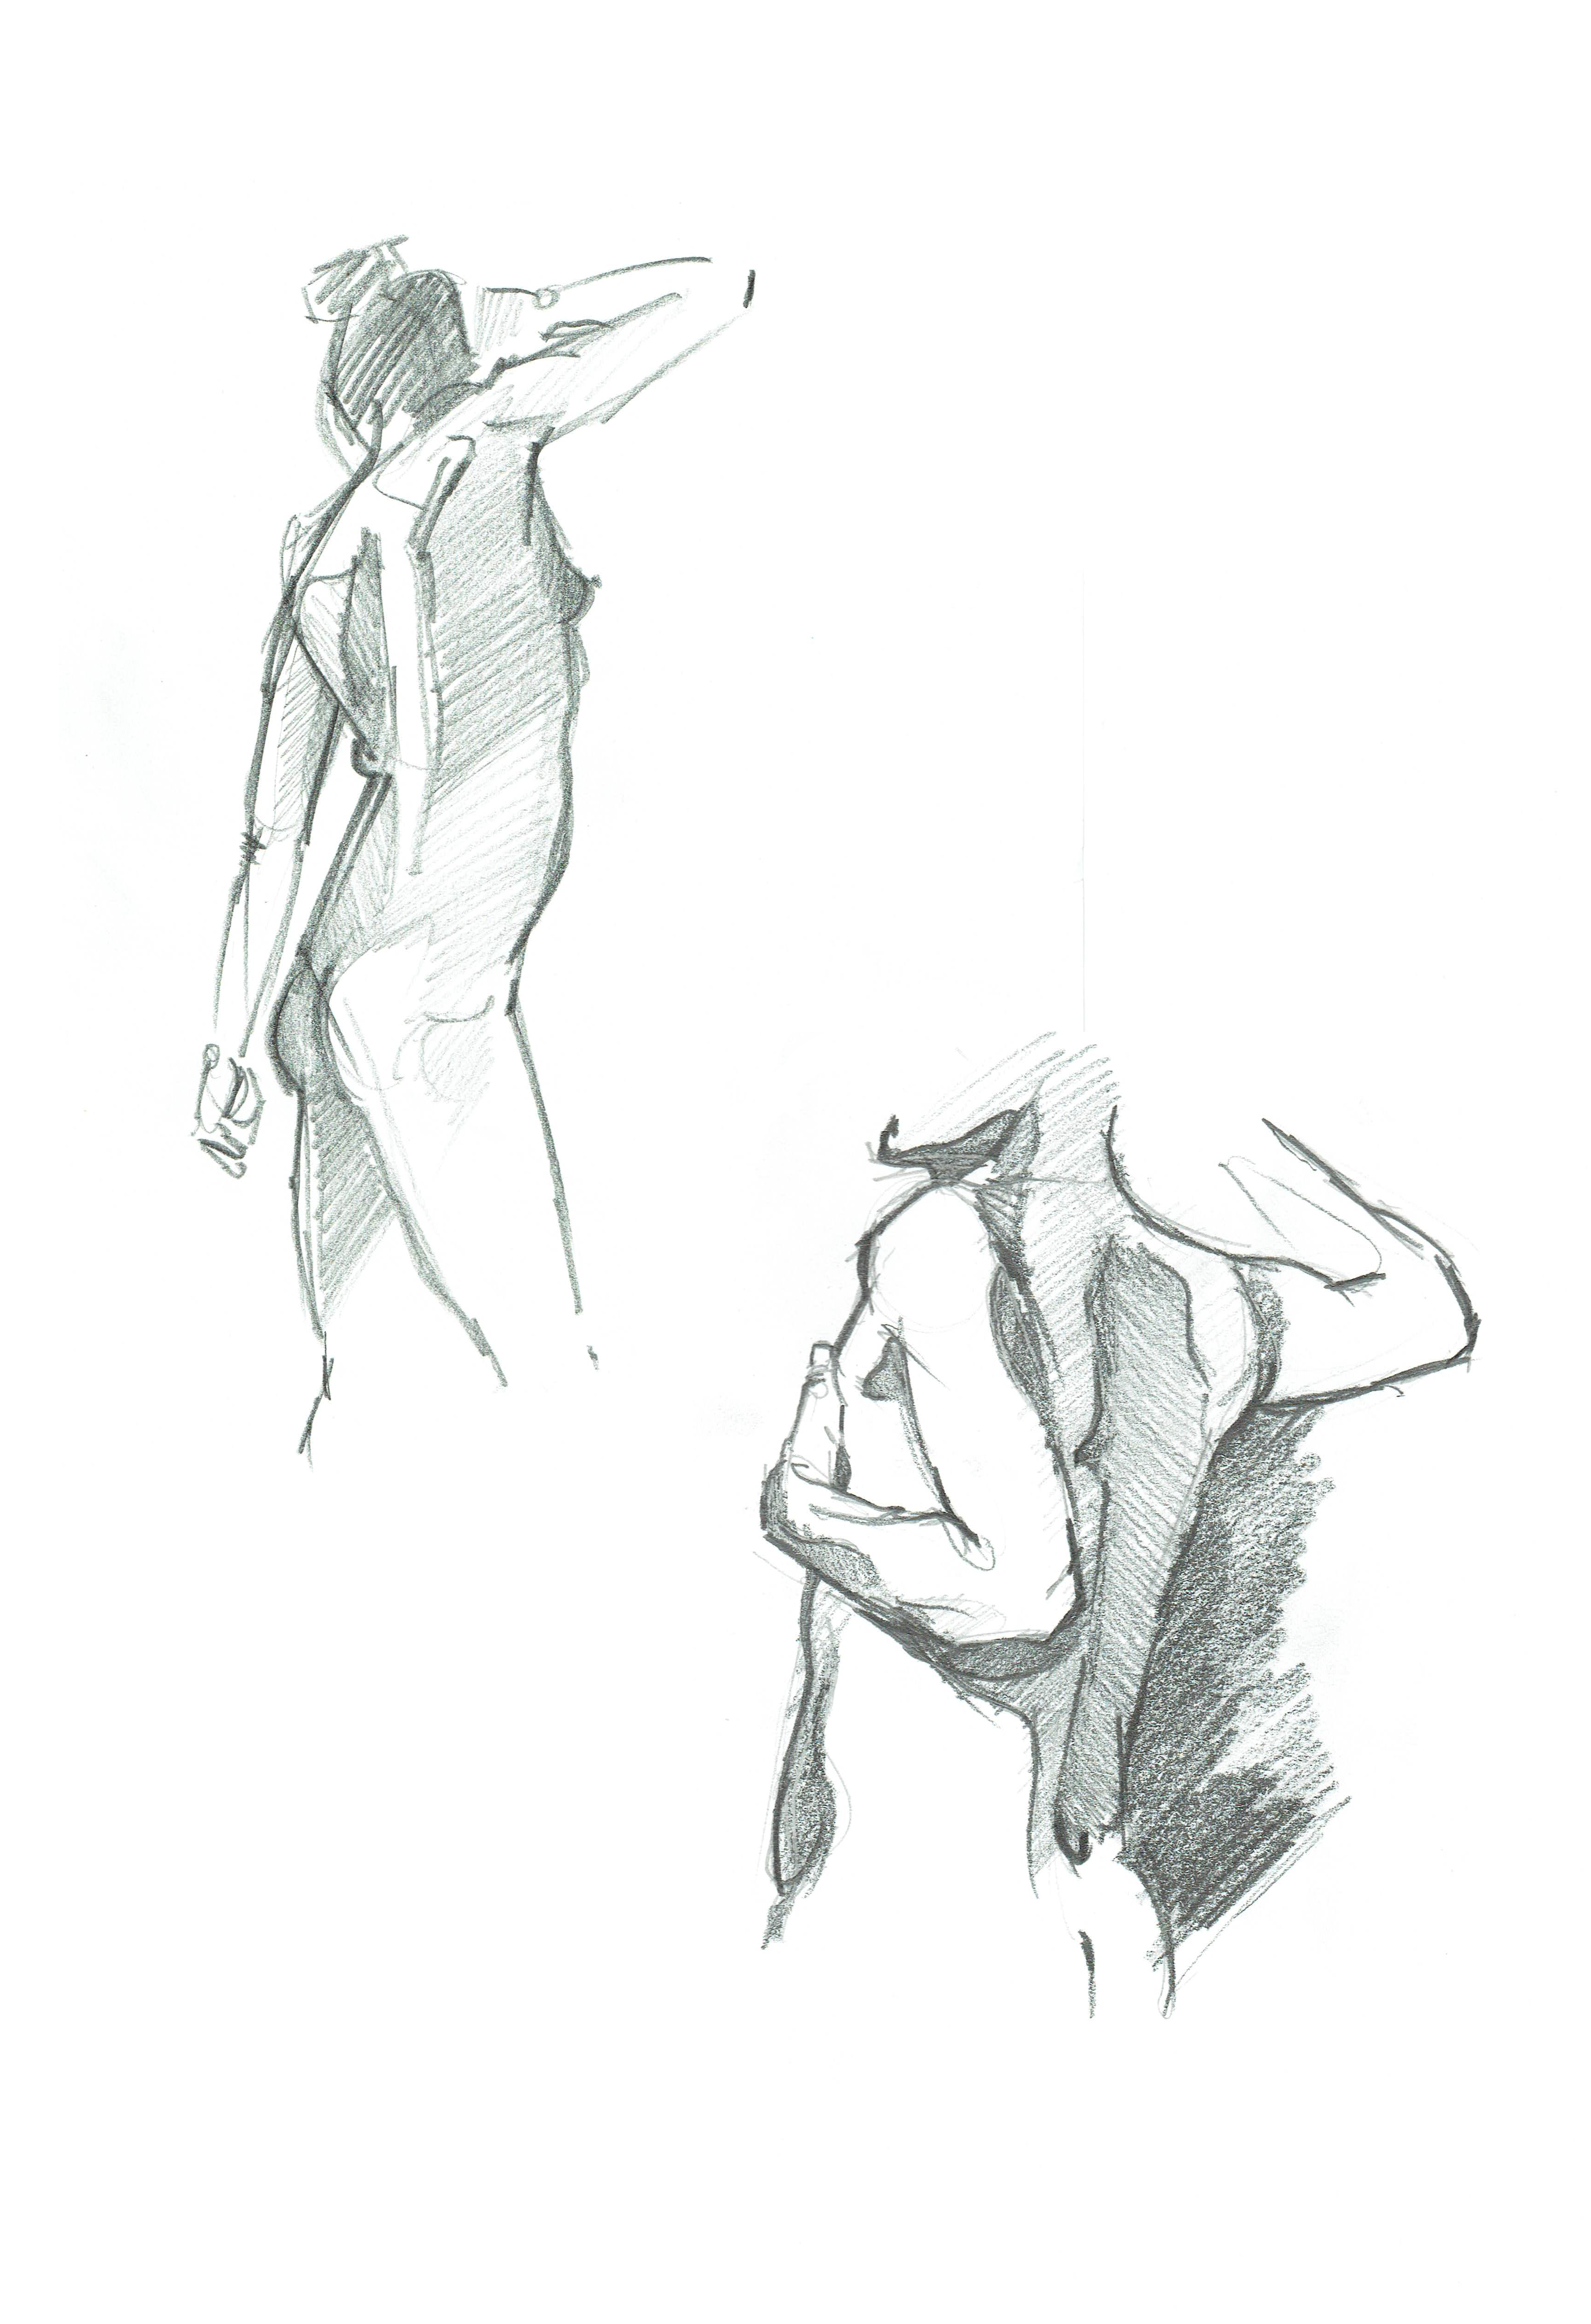 Lifedrawing pencil